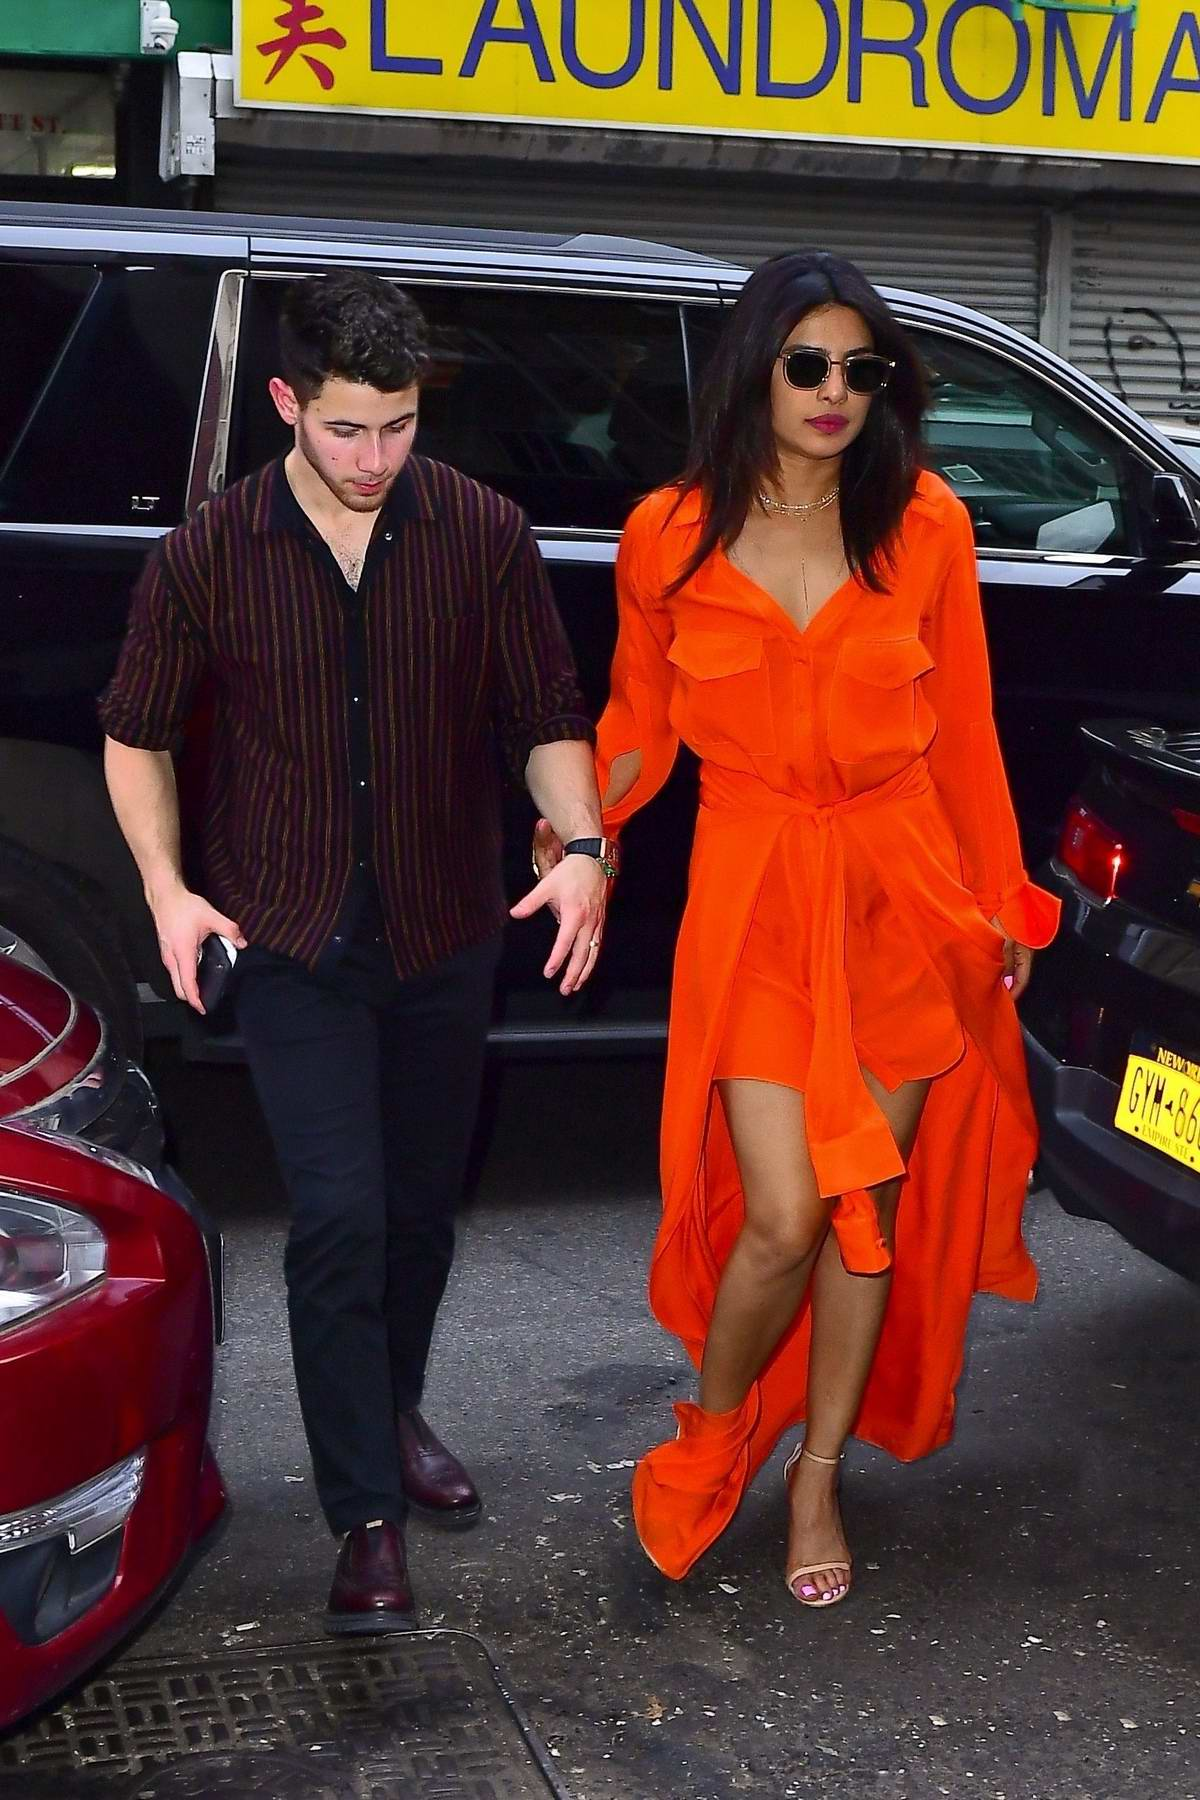 Priyanka Chopra looks vibrant in bright orange as she steps out with husband Nick Jonas in New York City